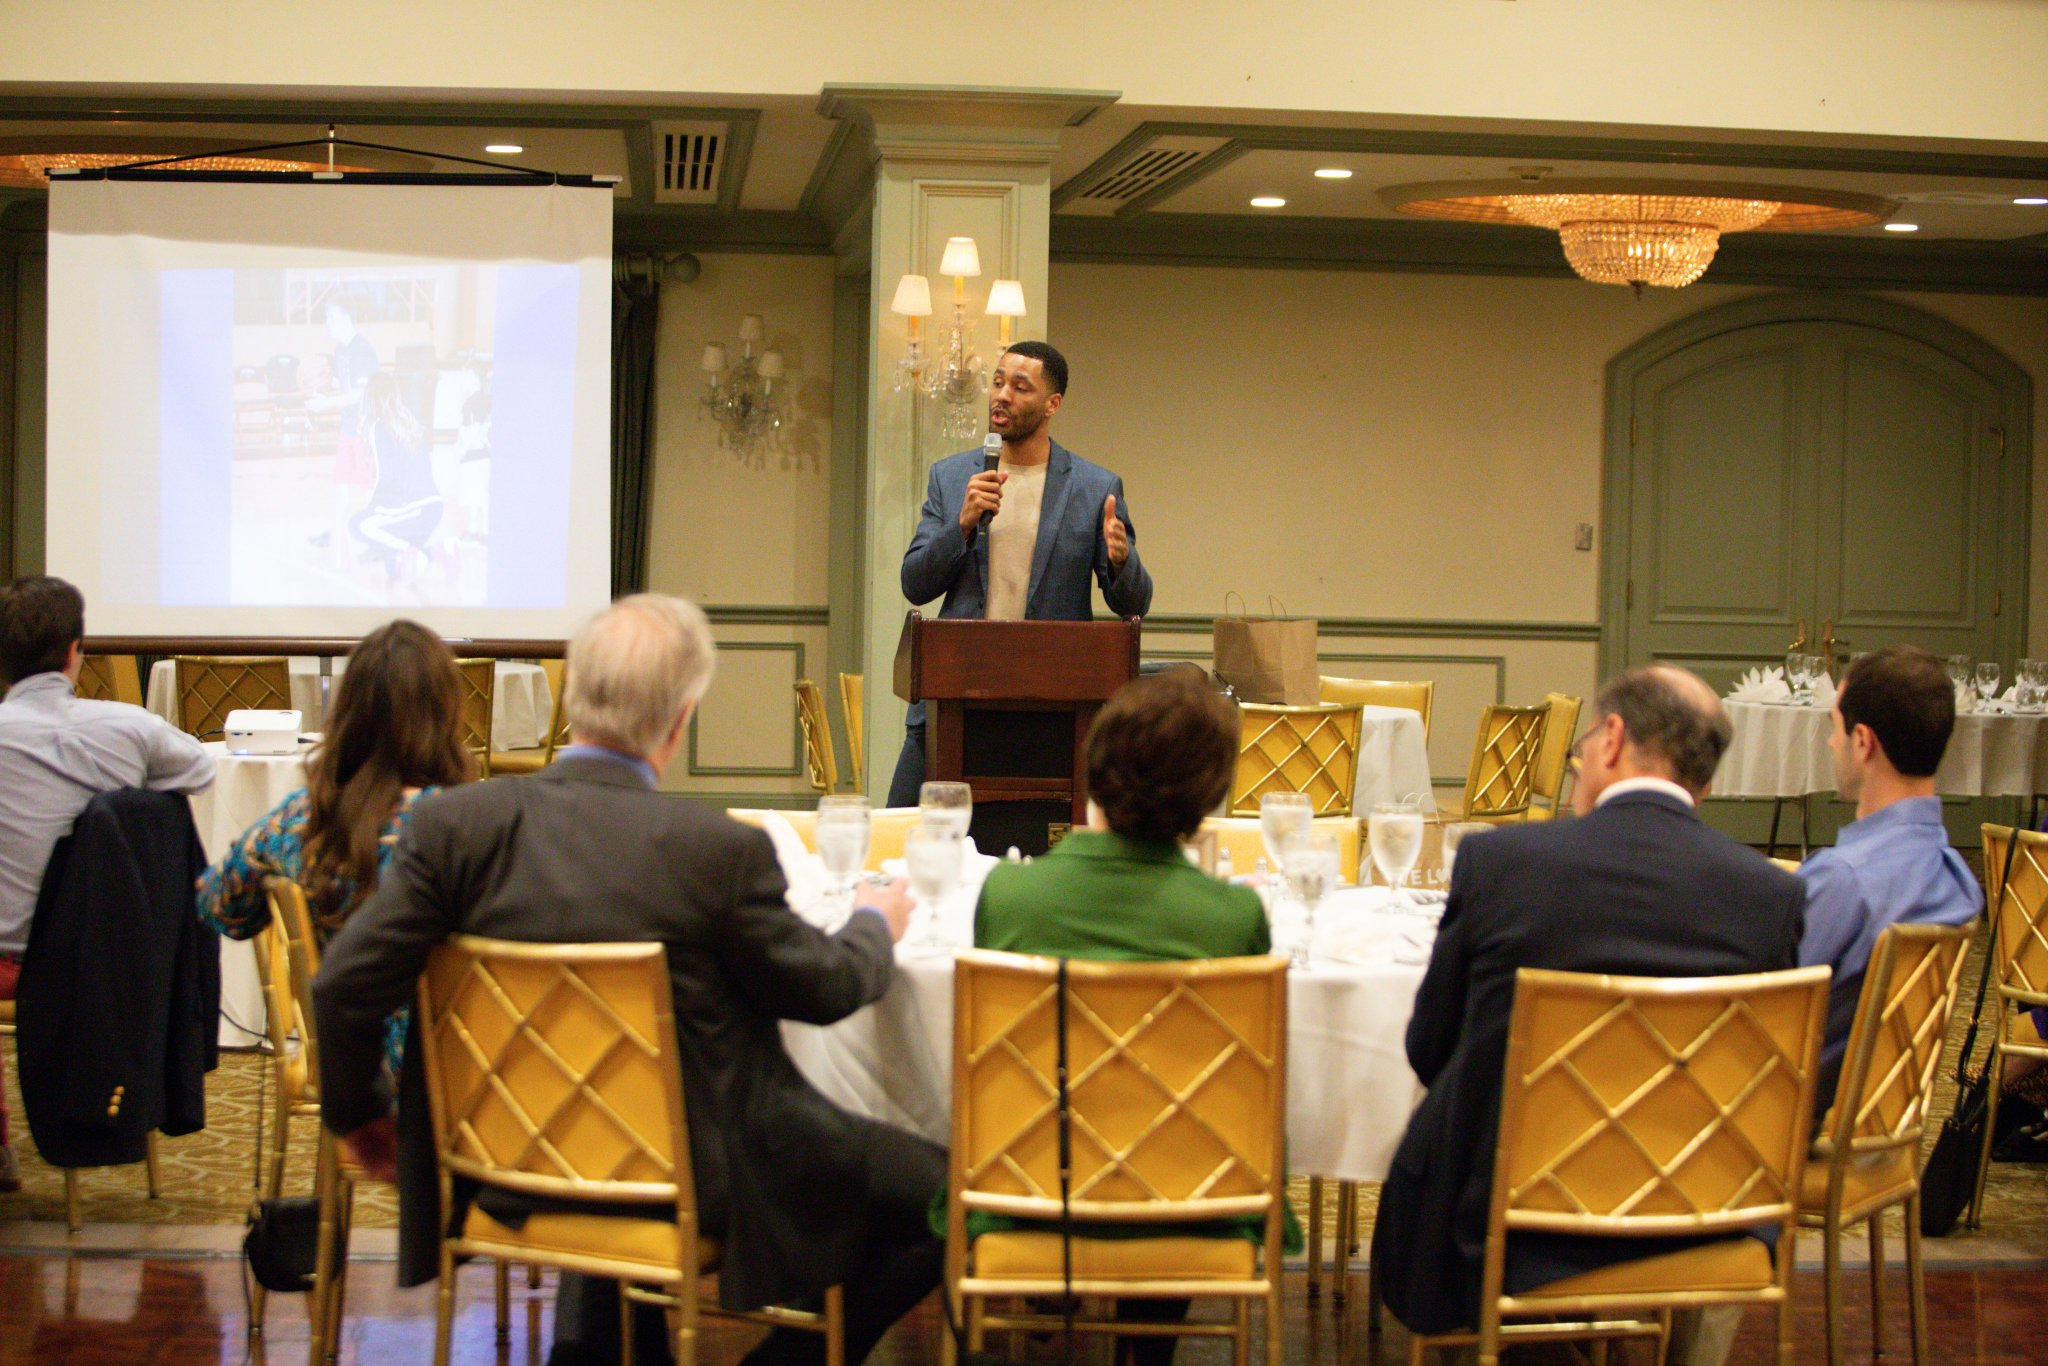 New Orleans Pelicans On Twitter Tonight Pelicans Assistant General Manager Bryson Graham And Play By Play Announcer Joel Meyers Hosted The 3 Point Club Dinner At The Chateau Country Club For Full Gallery Https T Co Kk6u06e81c